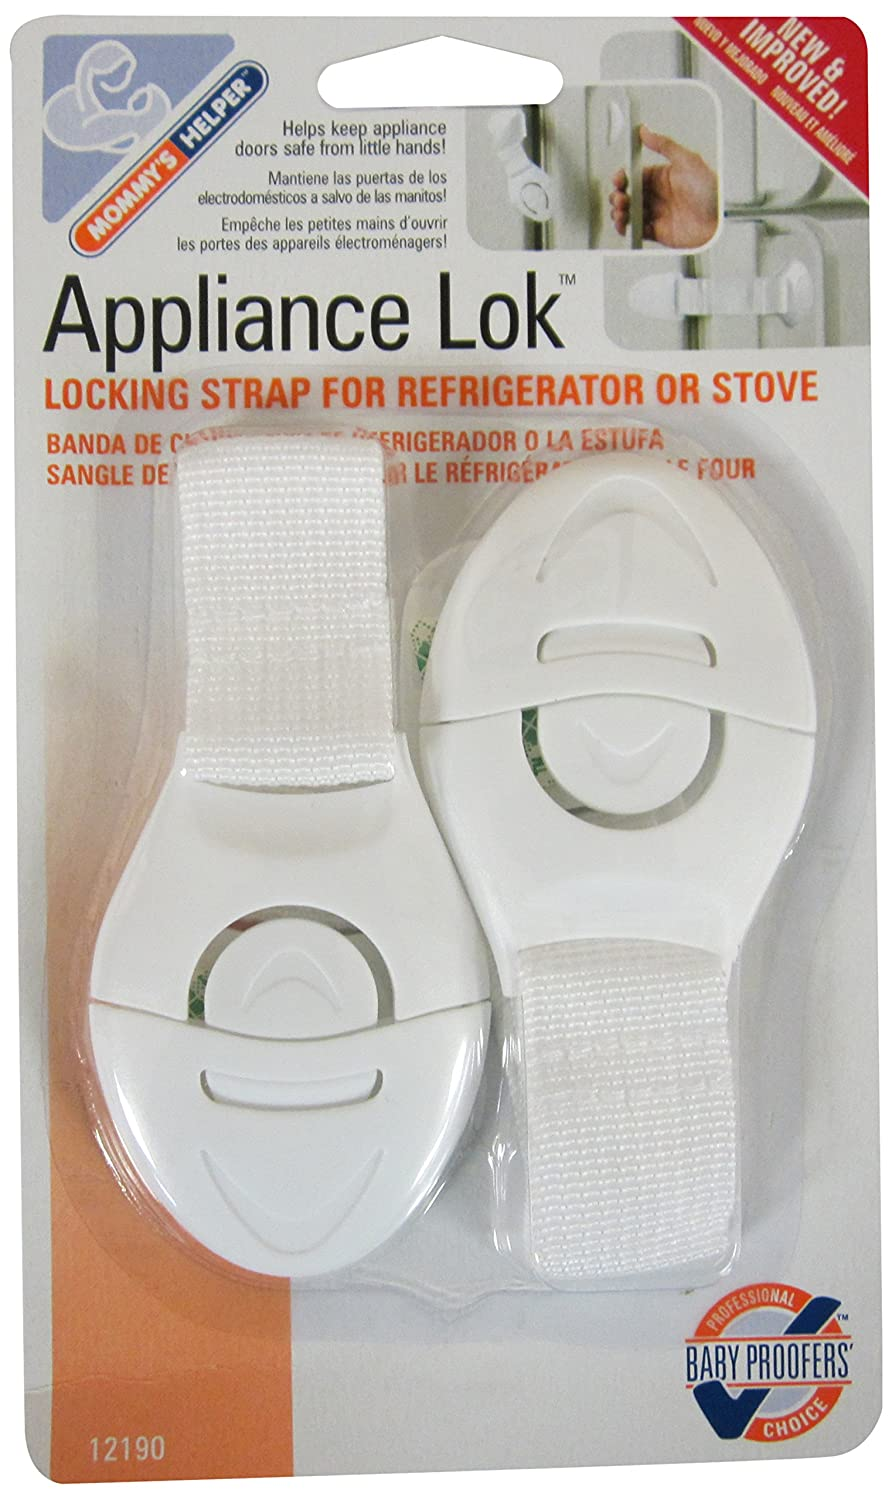 Mommy's Helper Applinace Lok Locking Strap for Refrigerator or Stove, White, 2-Pack Mommys Helper Inc 12190